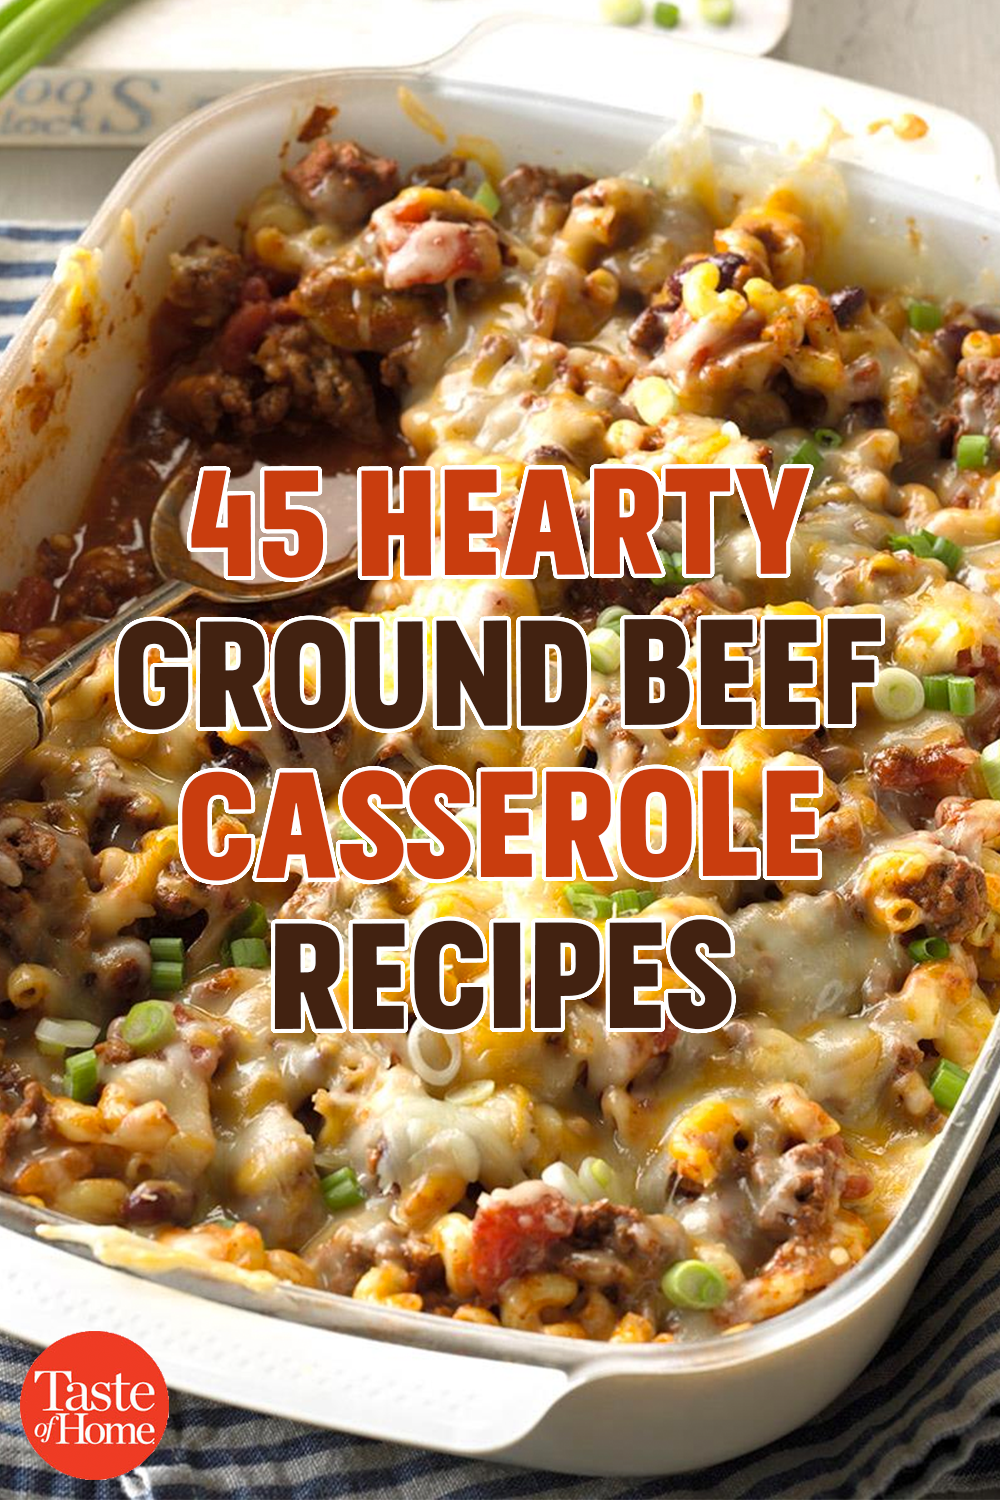 45 Hearty Ground Beef Casserole Recipes images